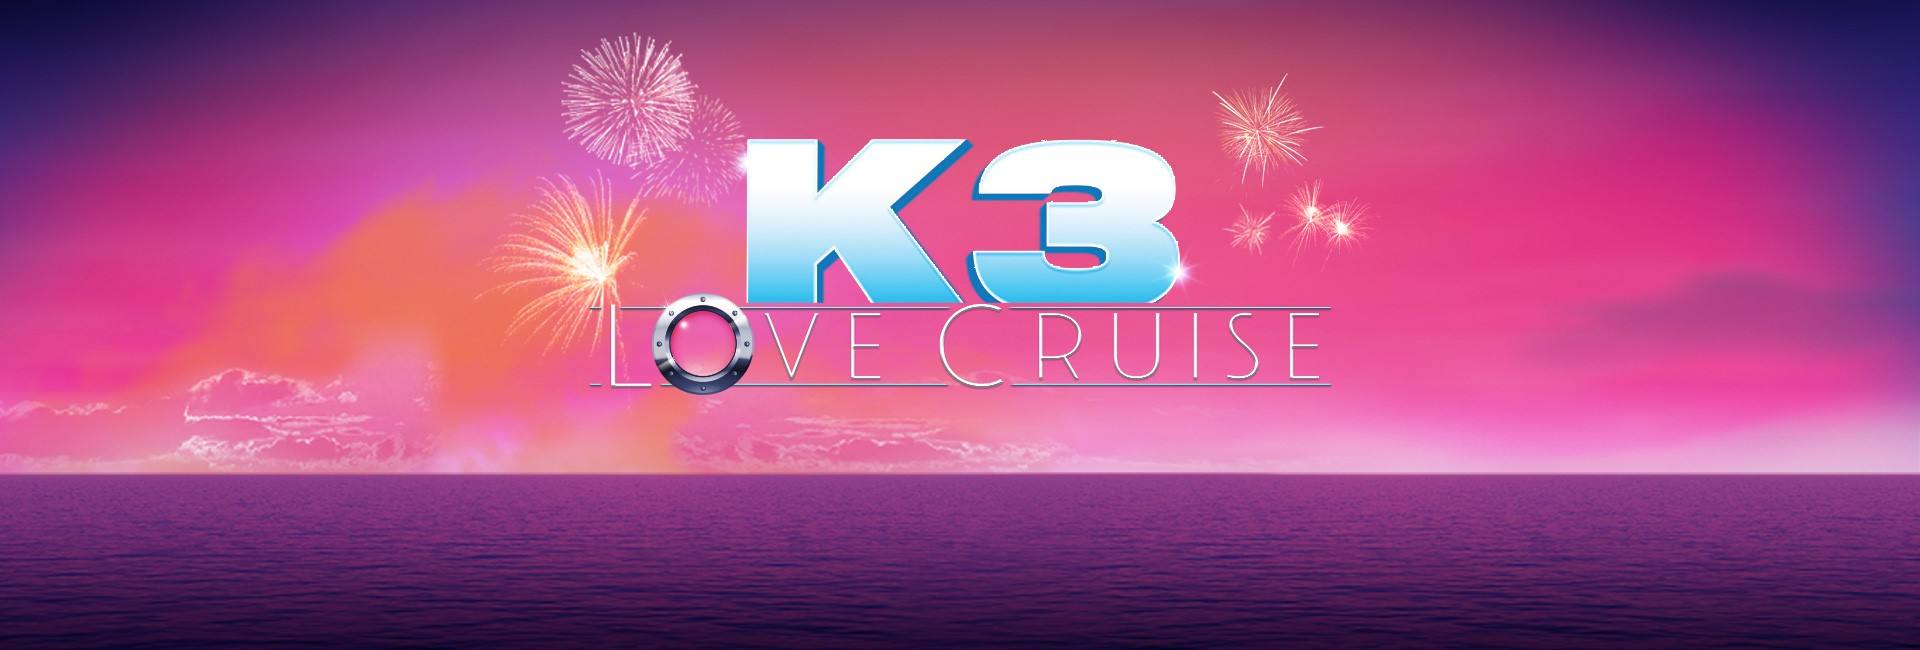 K3 Love Cruise Header